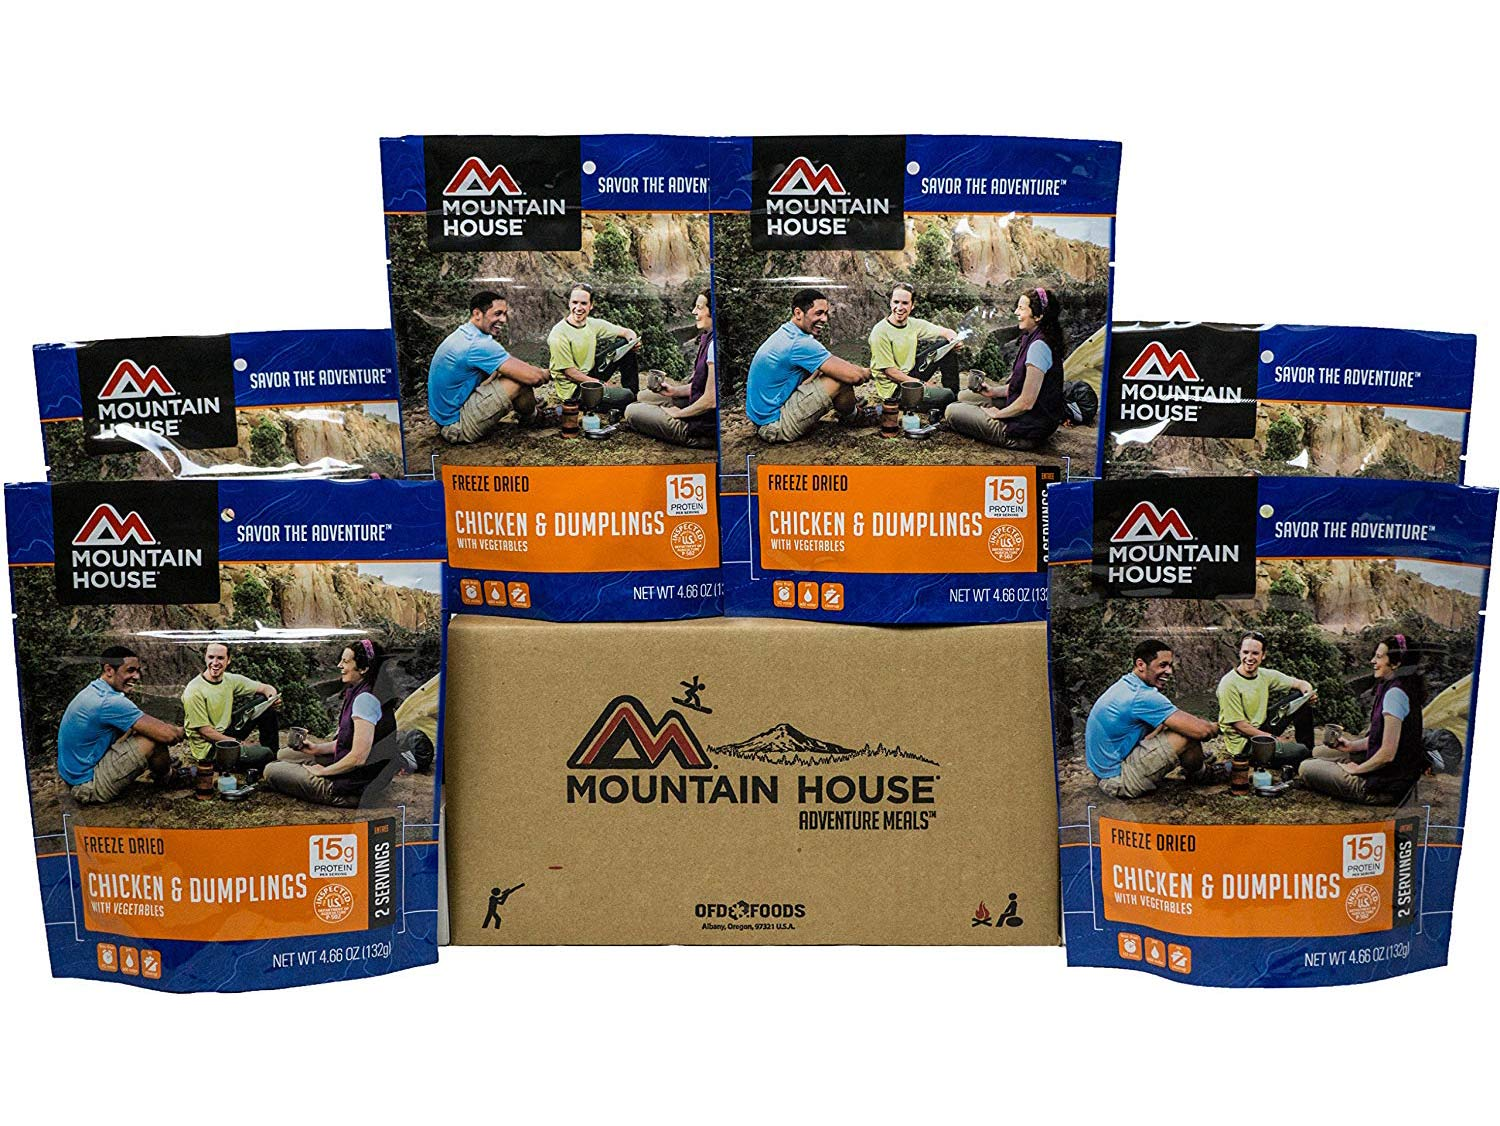 3 Things to Look for in Freeze Dried Meals